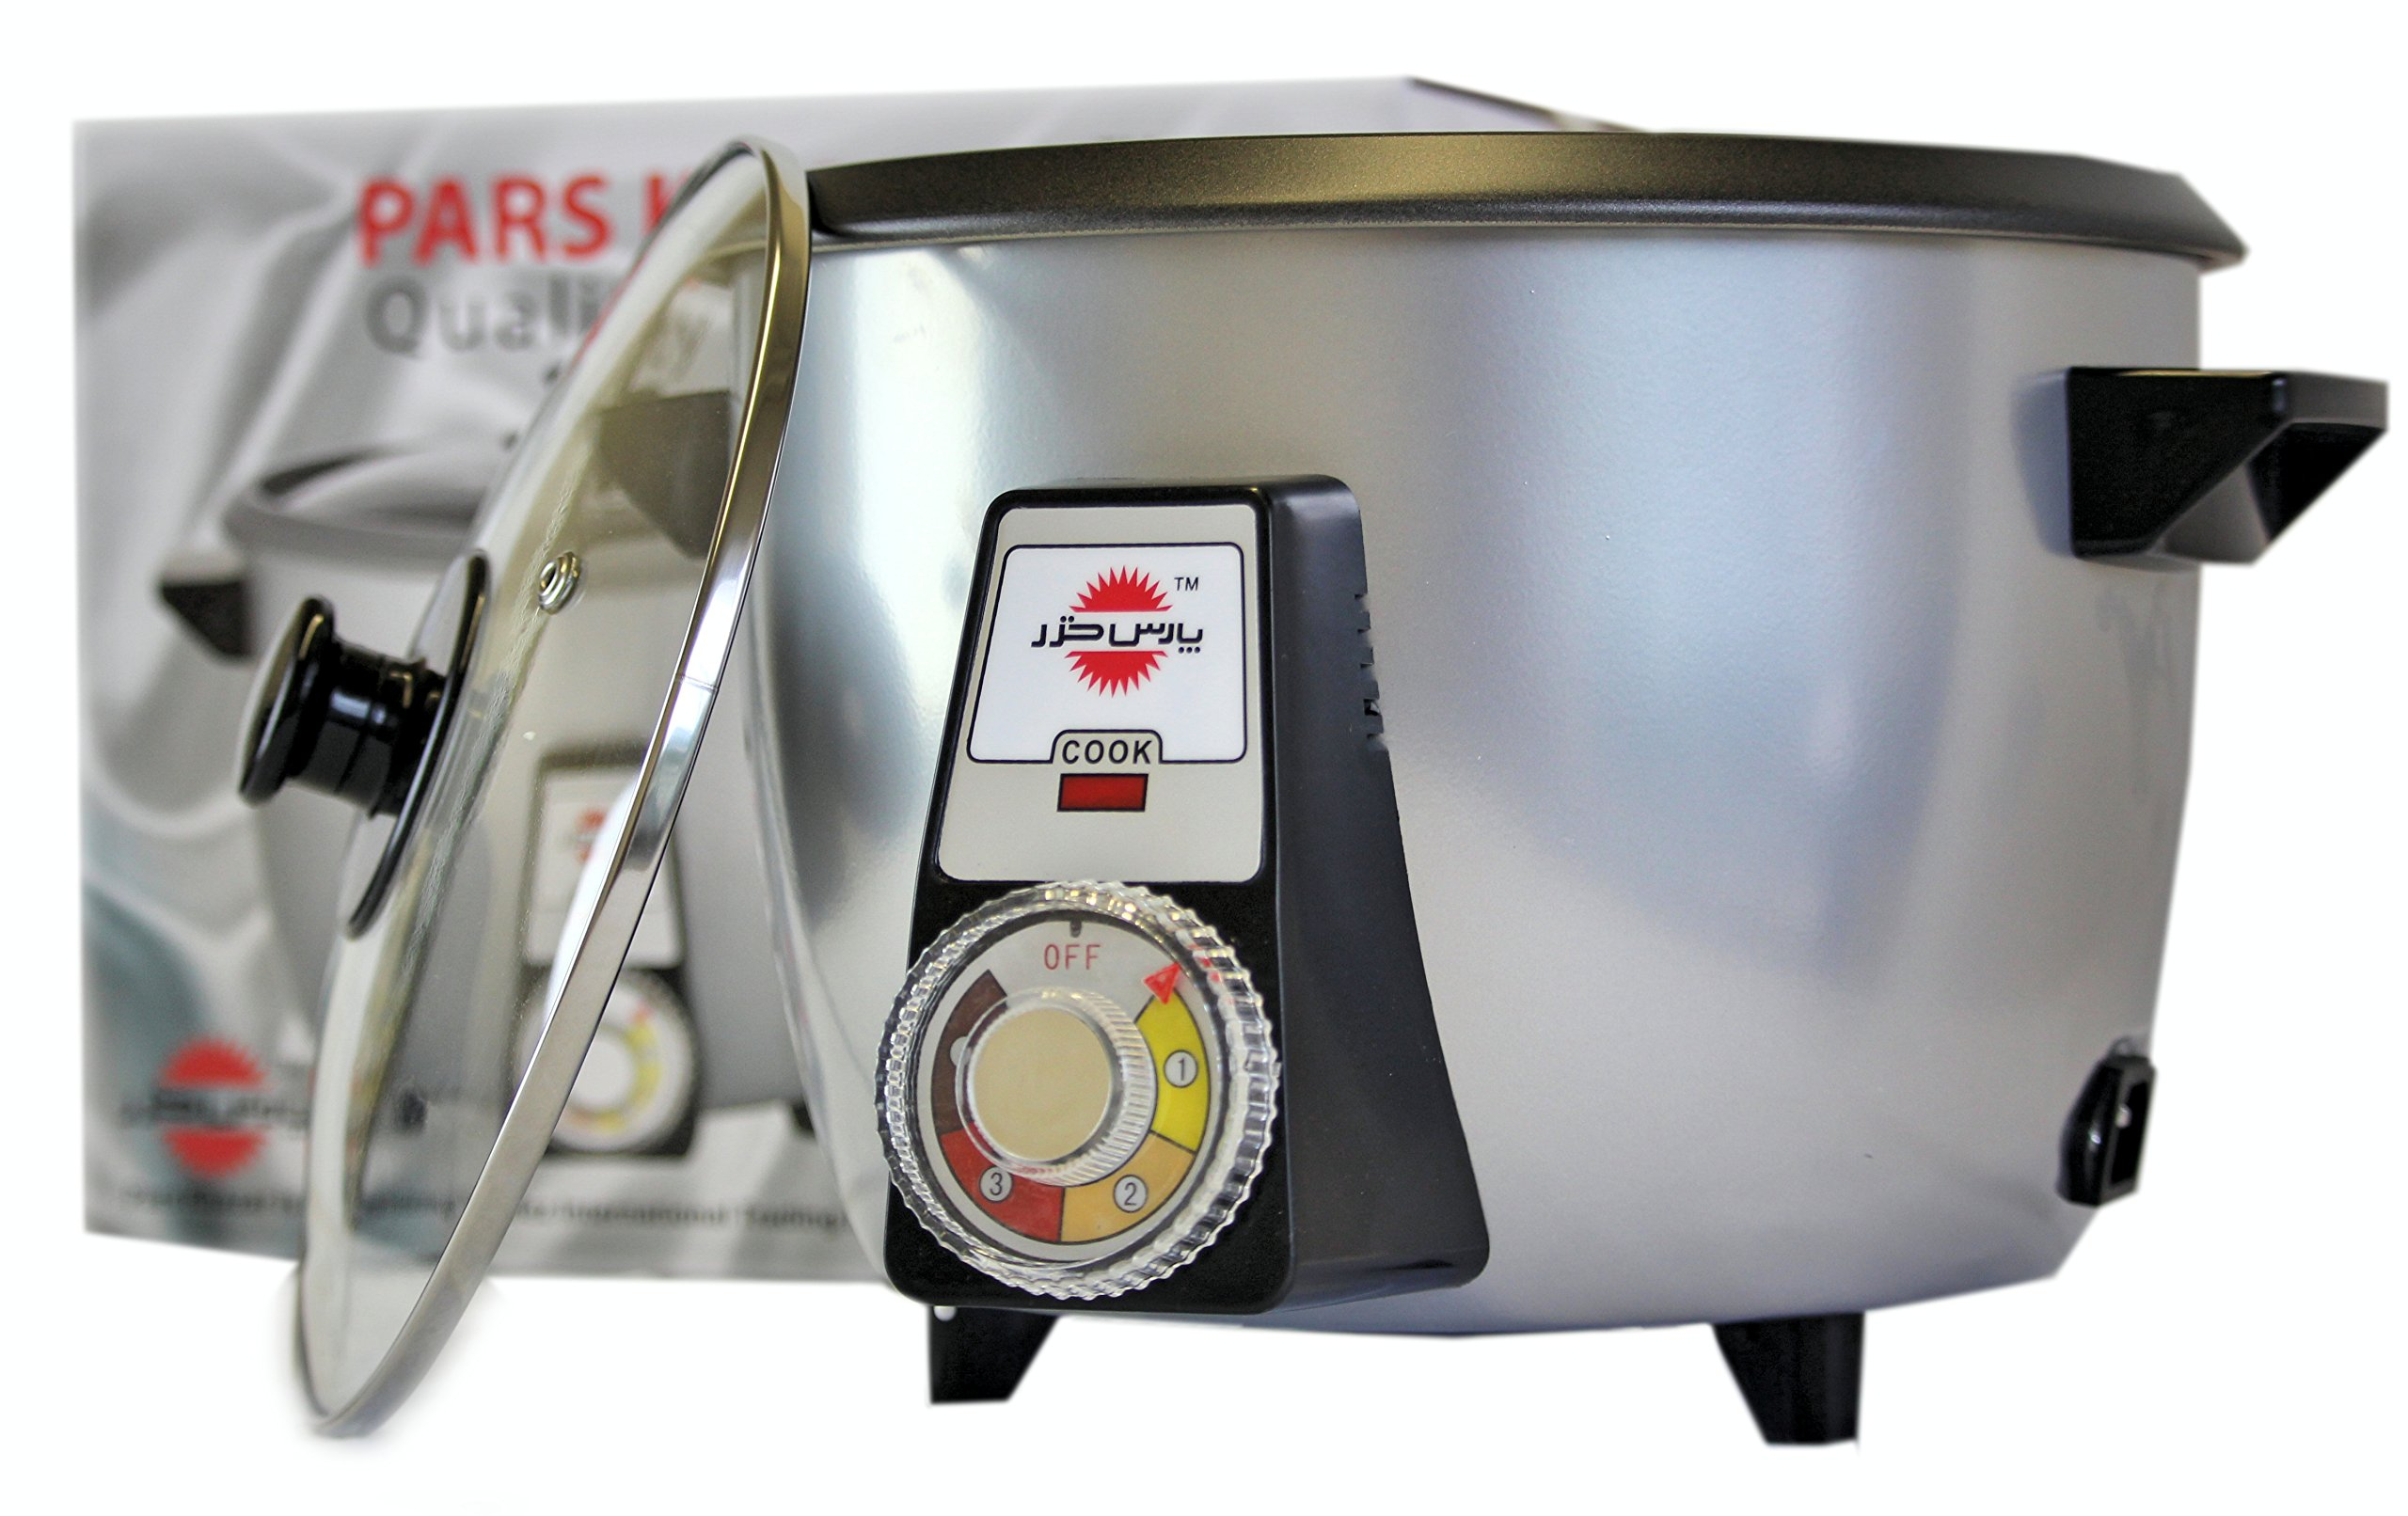 PARS KHAZAR Automatic Persian Rice Cooker 4 Cup